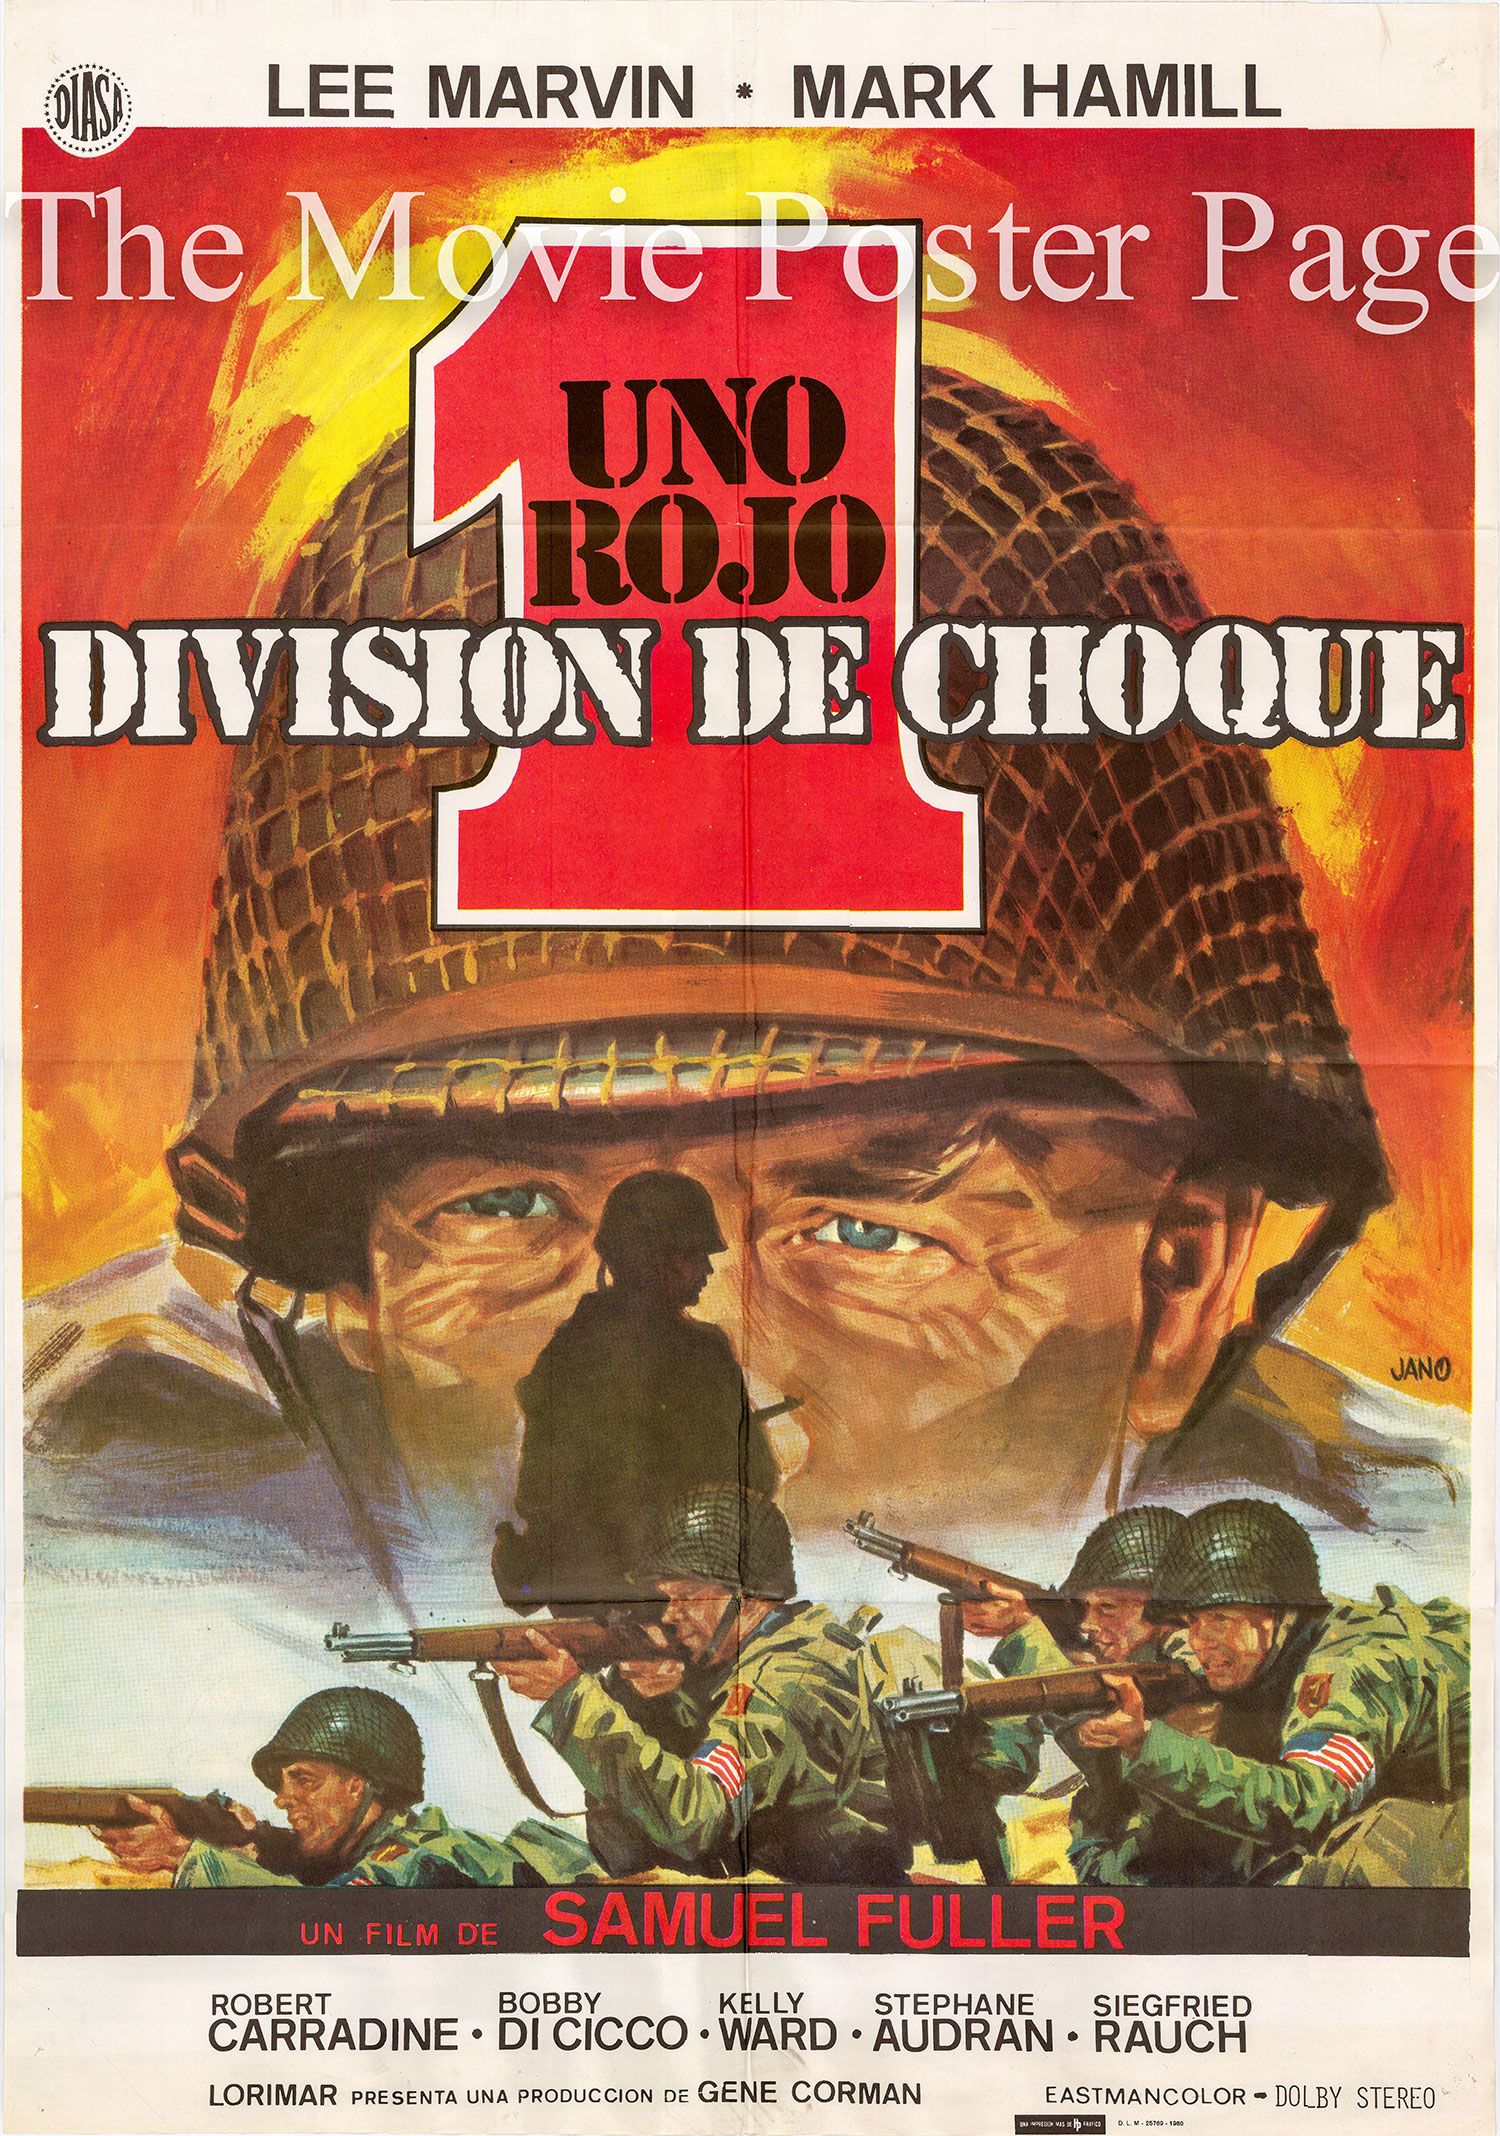 Pictured is a Spanish promotional poster for the 1980 Samuel Fuller film The Big Red One starring Lee Marvin.